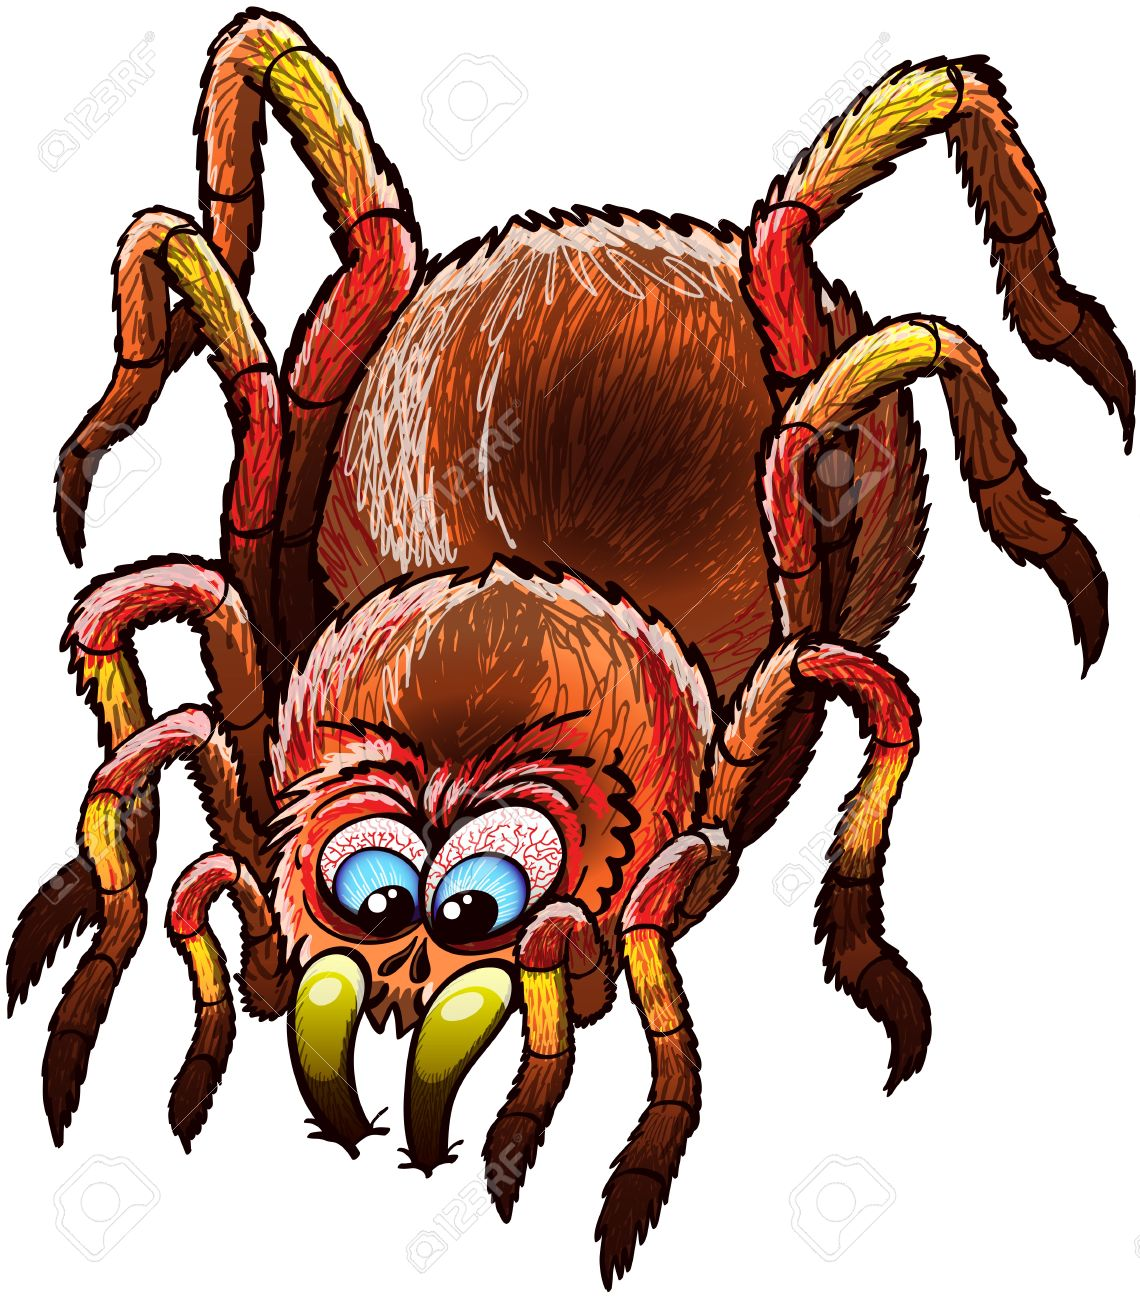 Big And Determined Tarantula With Urticating Hairs, Long Legs.